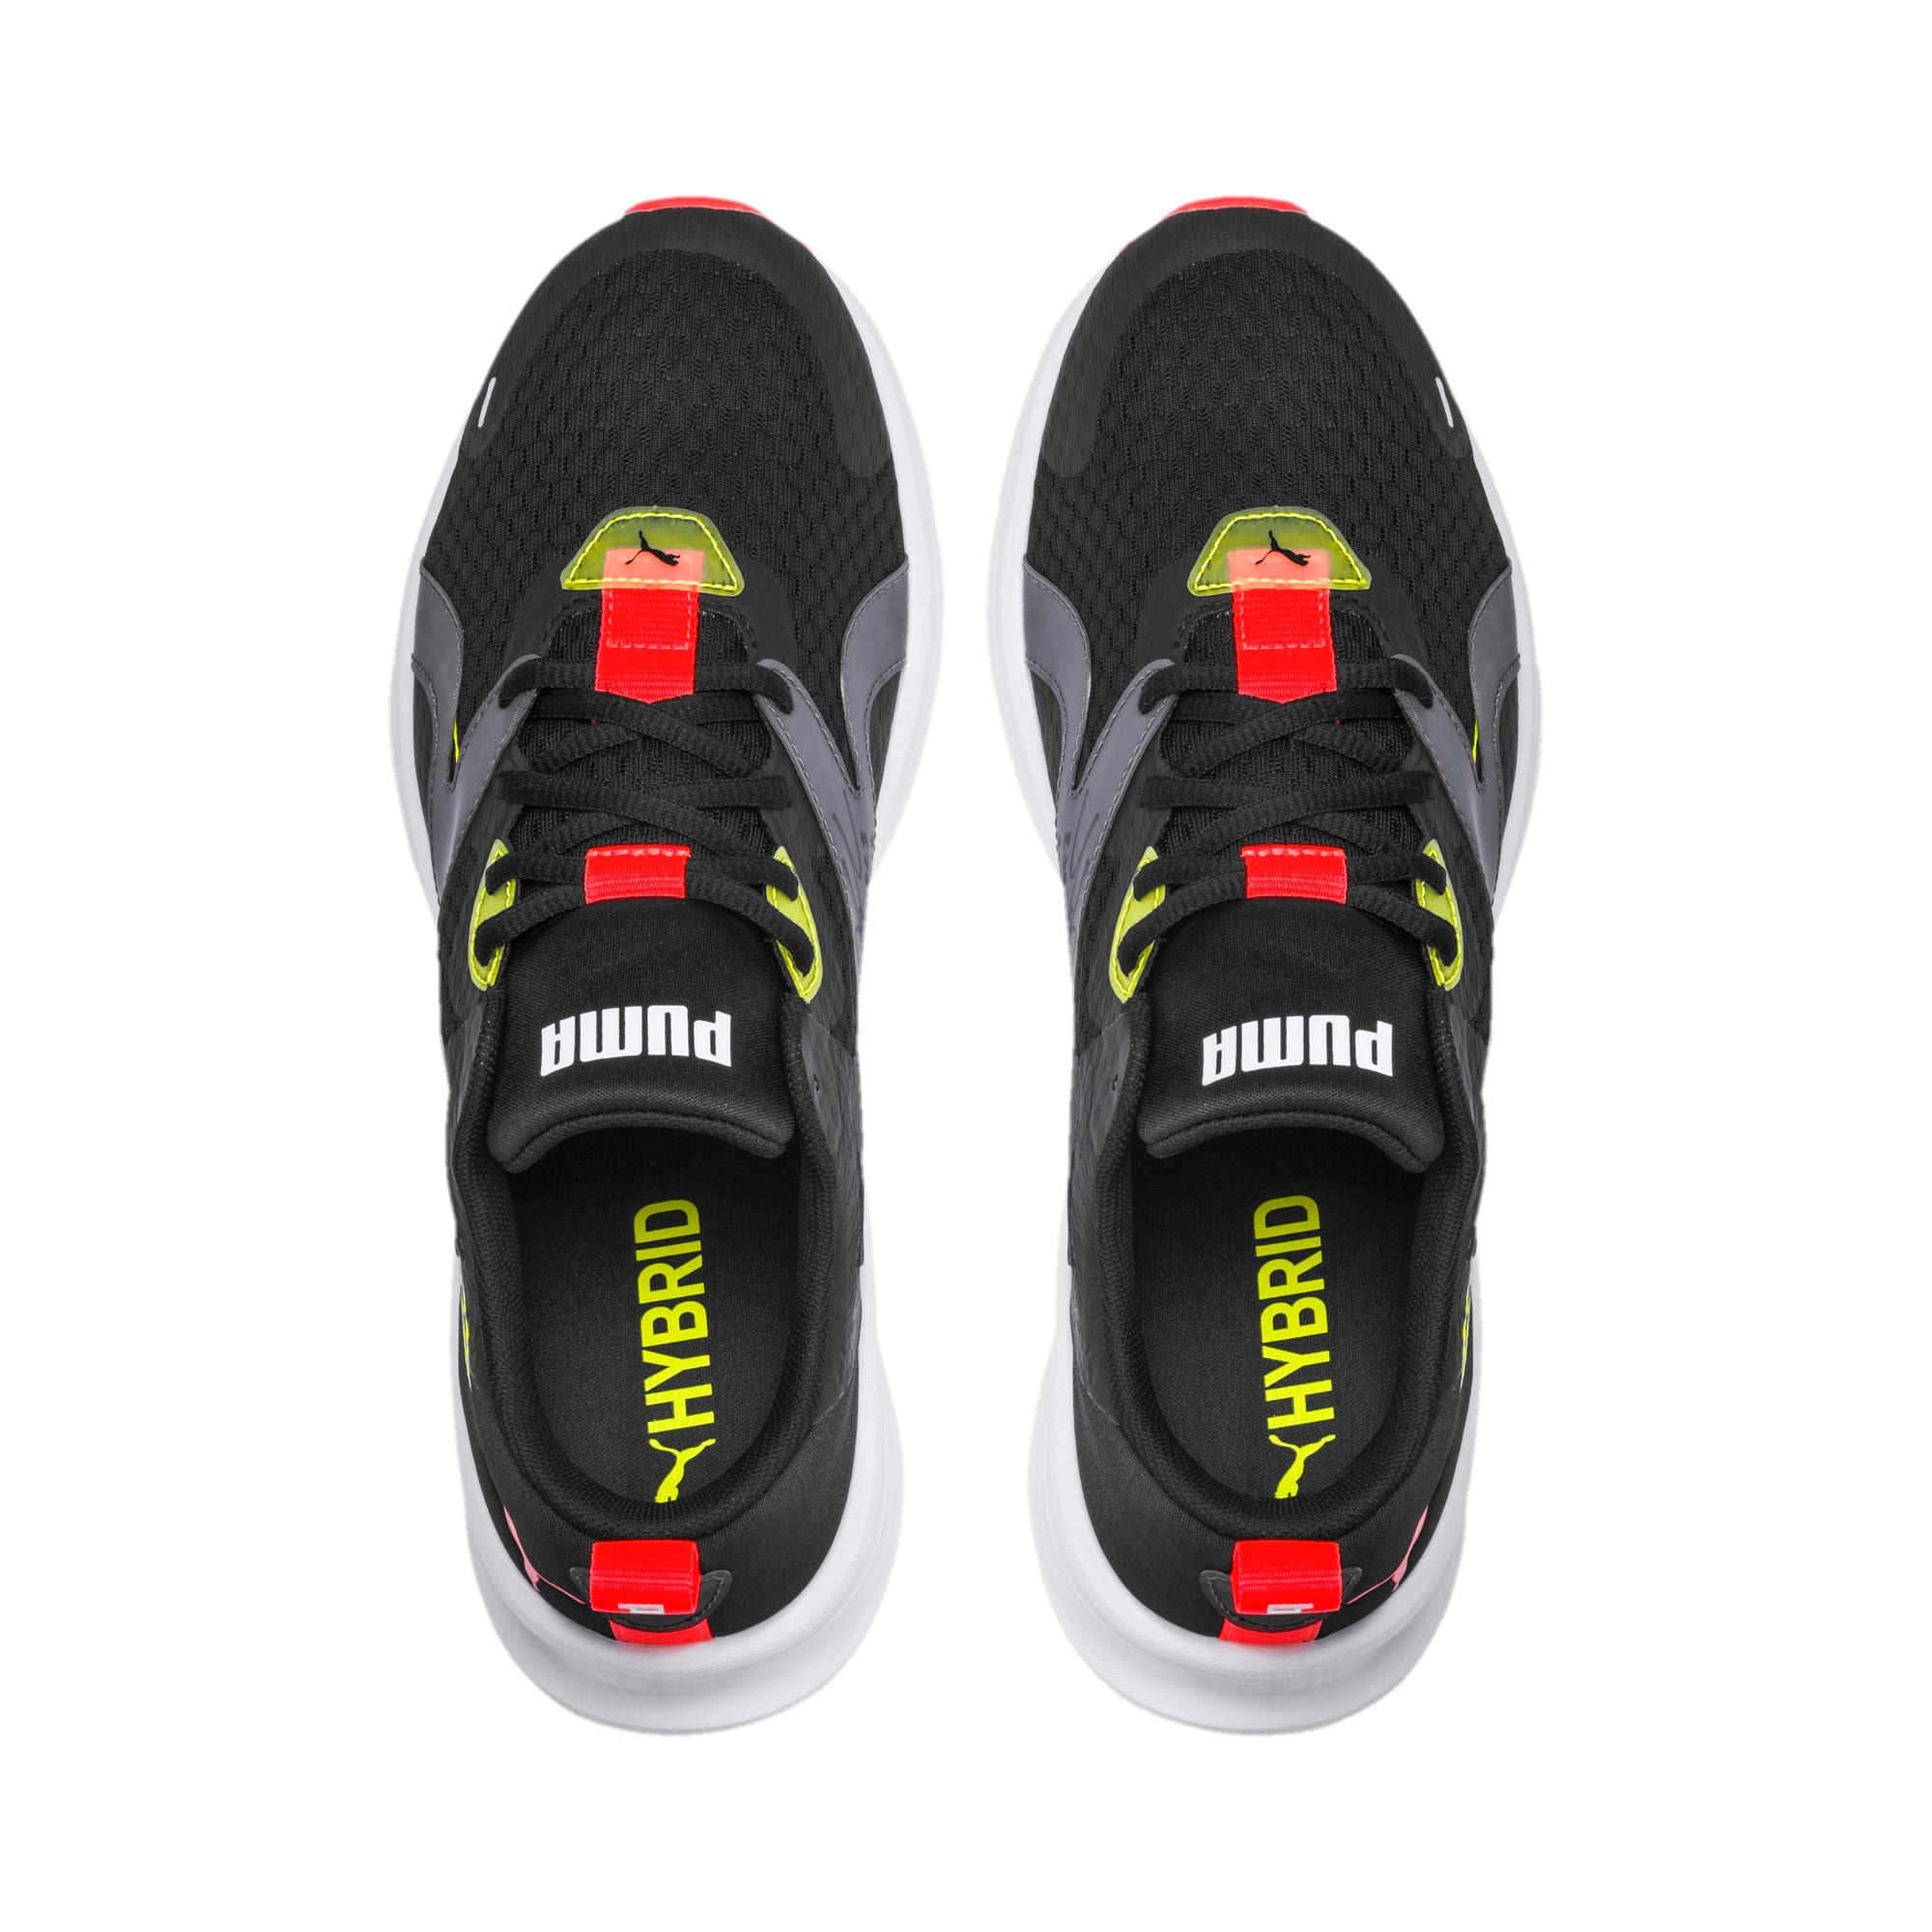 Thumbnail 6 of HYBRID Fuego Men's Running Shoes, Puma Black-Yellow Alert, medium